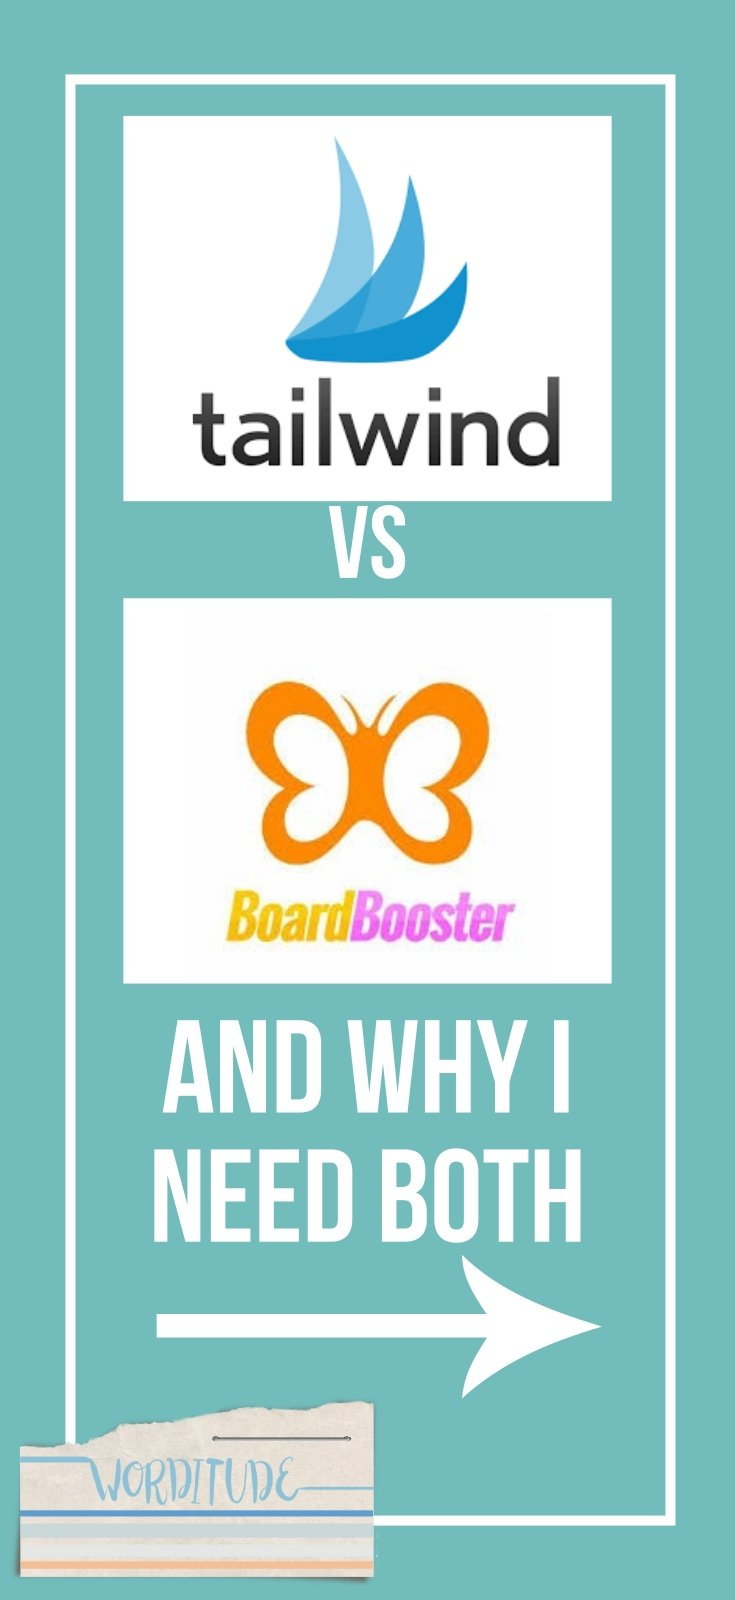 Tailwind vs Board Booster